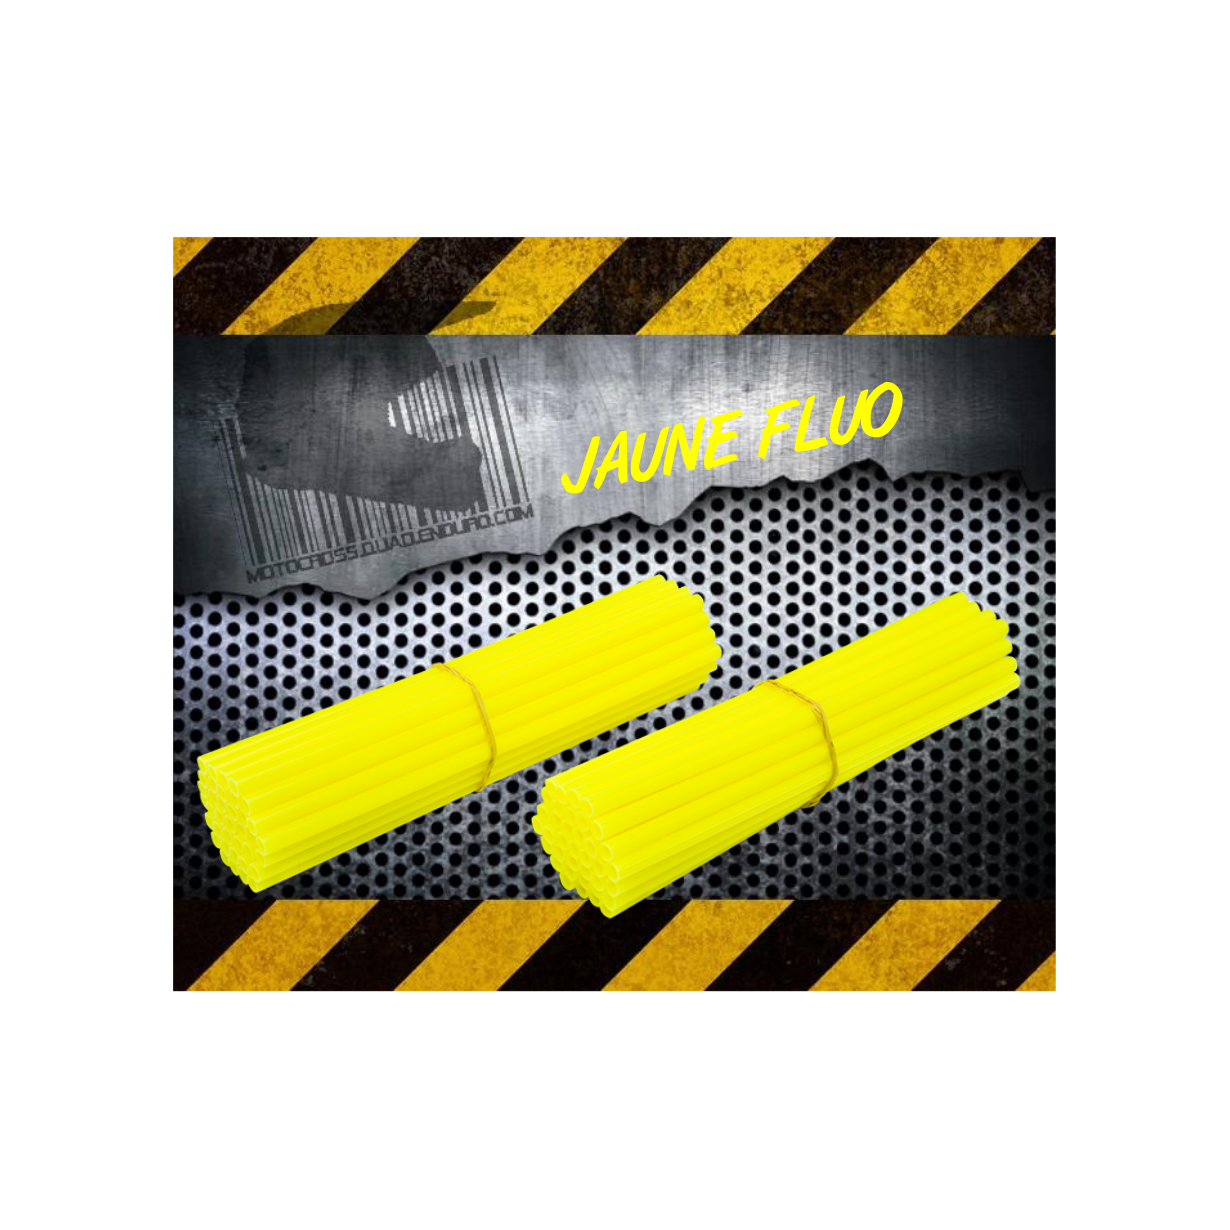 Couvres rayons jaune fluo spoke coats spoke skins 2